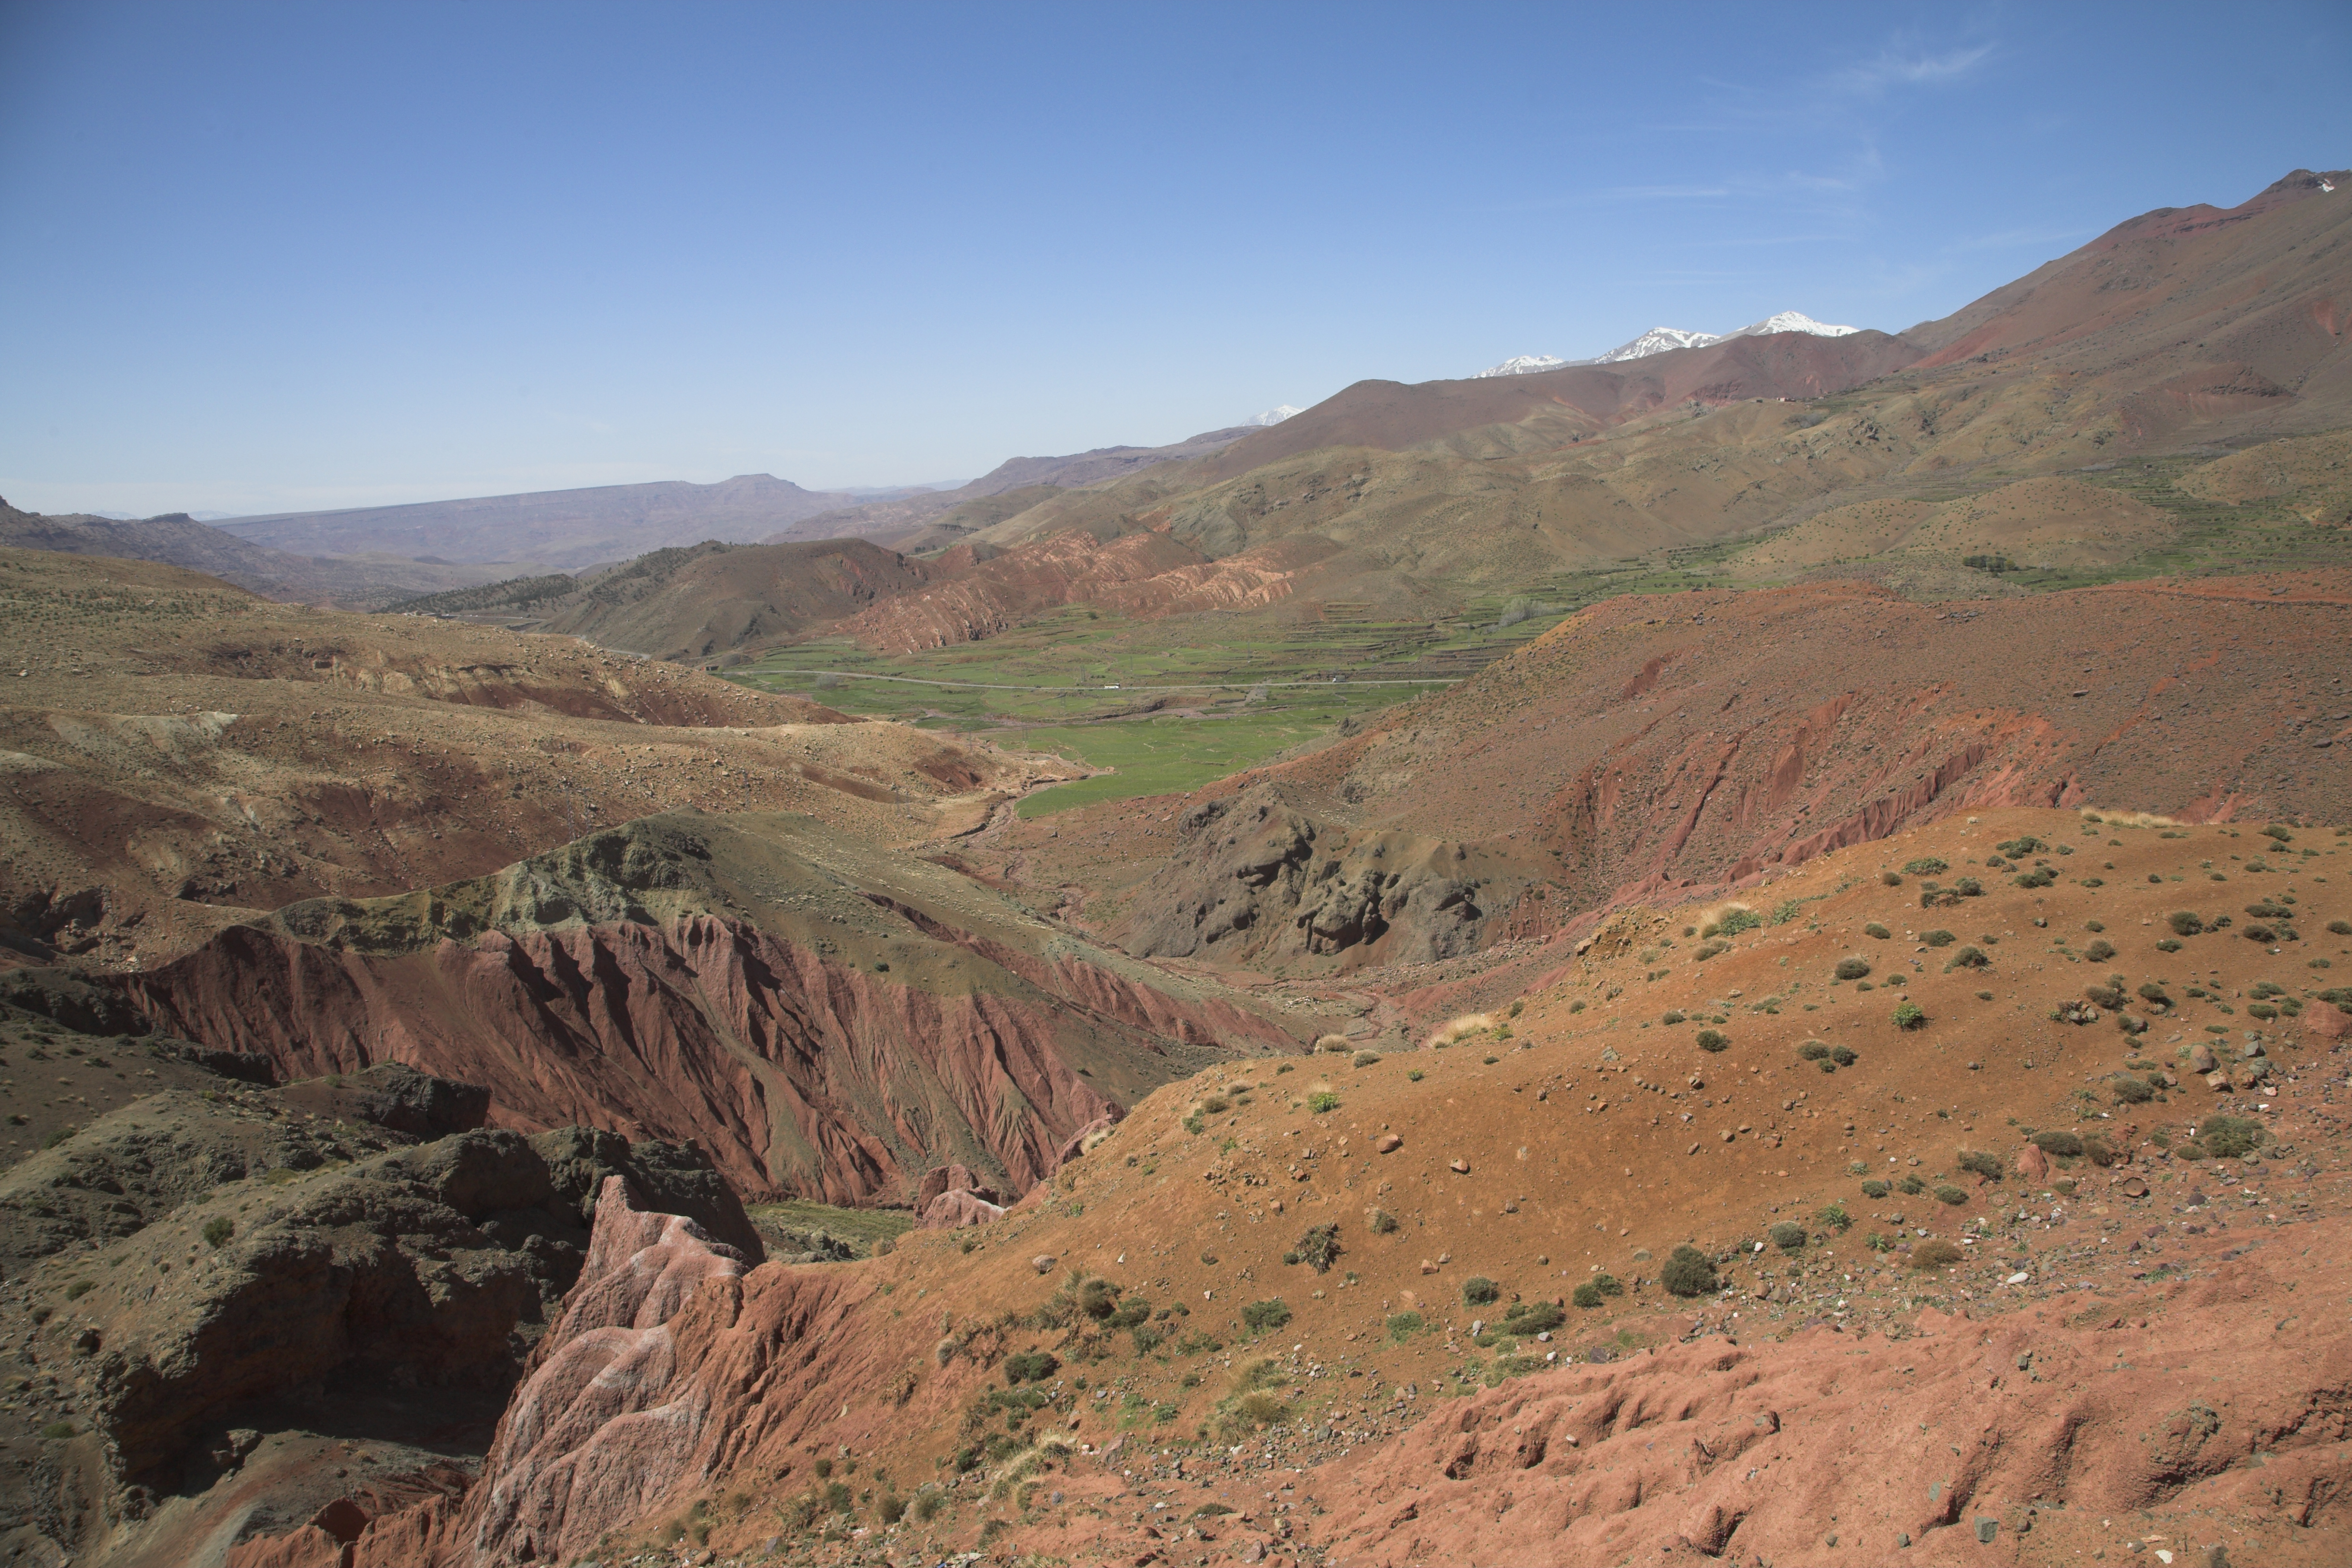 Morocco's High Atlas Mountains are seen with the Jebel Toubkal range in the distance.